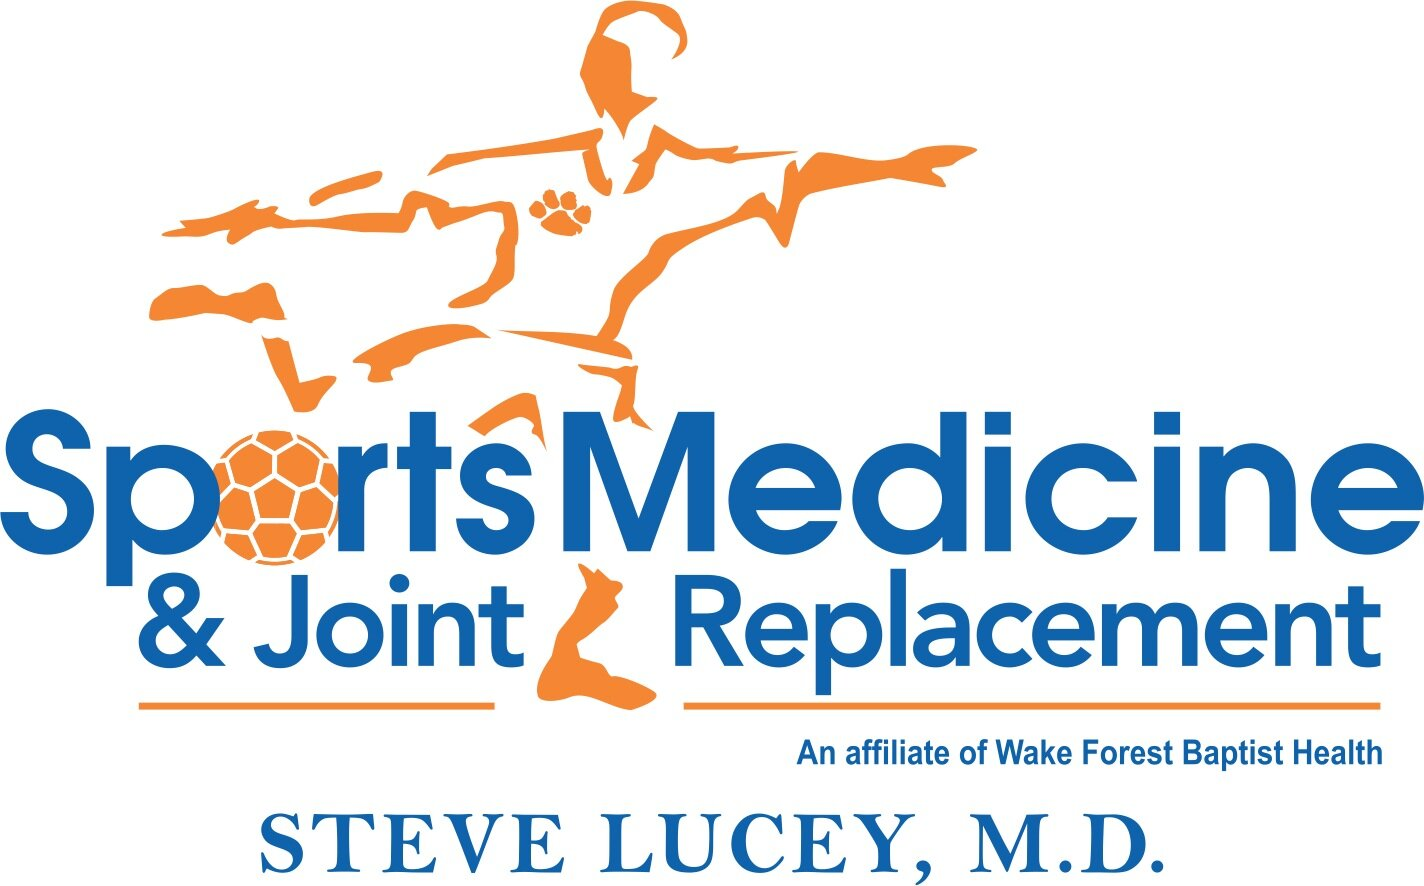 Sports Medicine & Joint Replacement